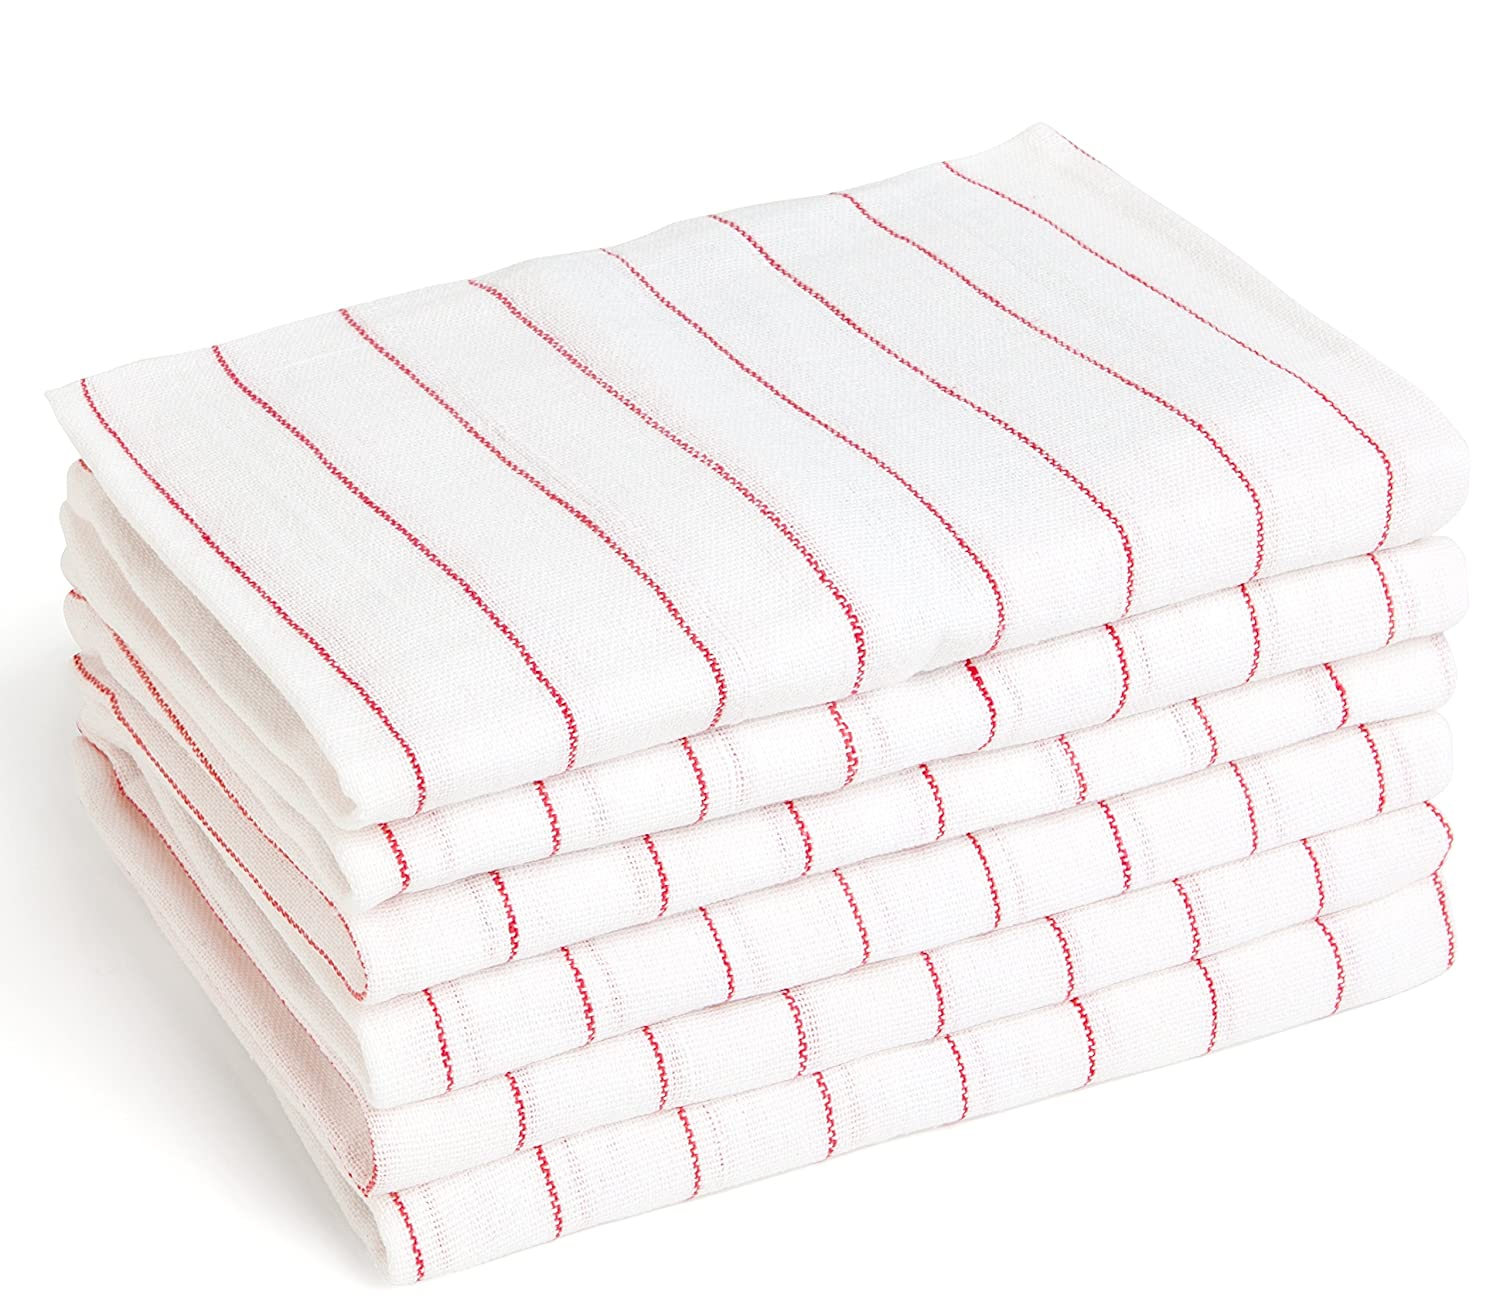 13 Red and White Stripe Cotton Towels